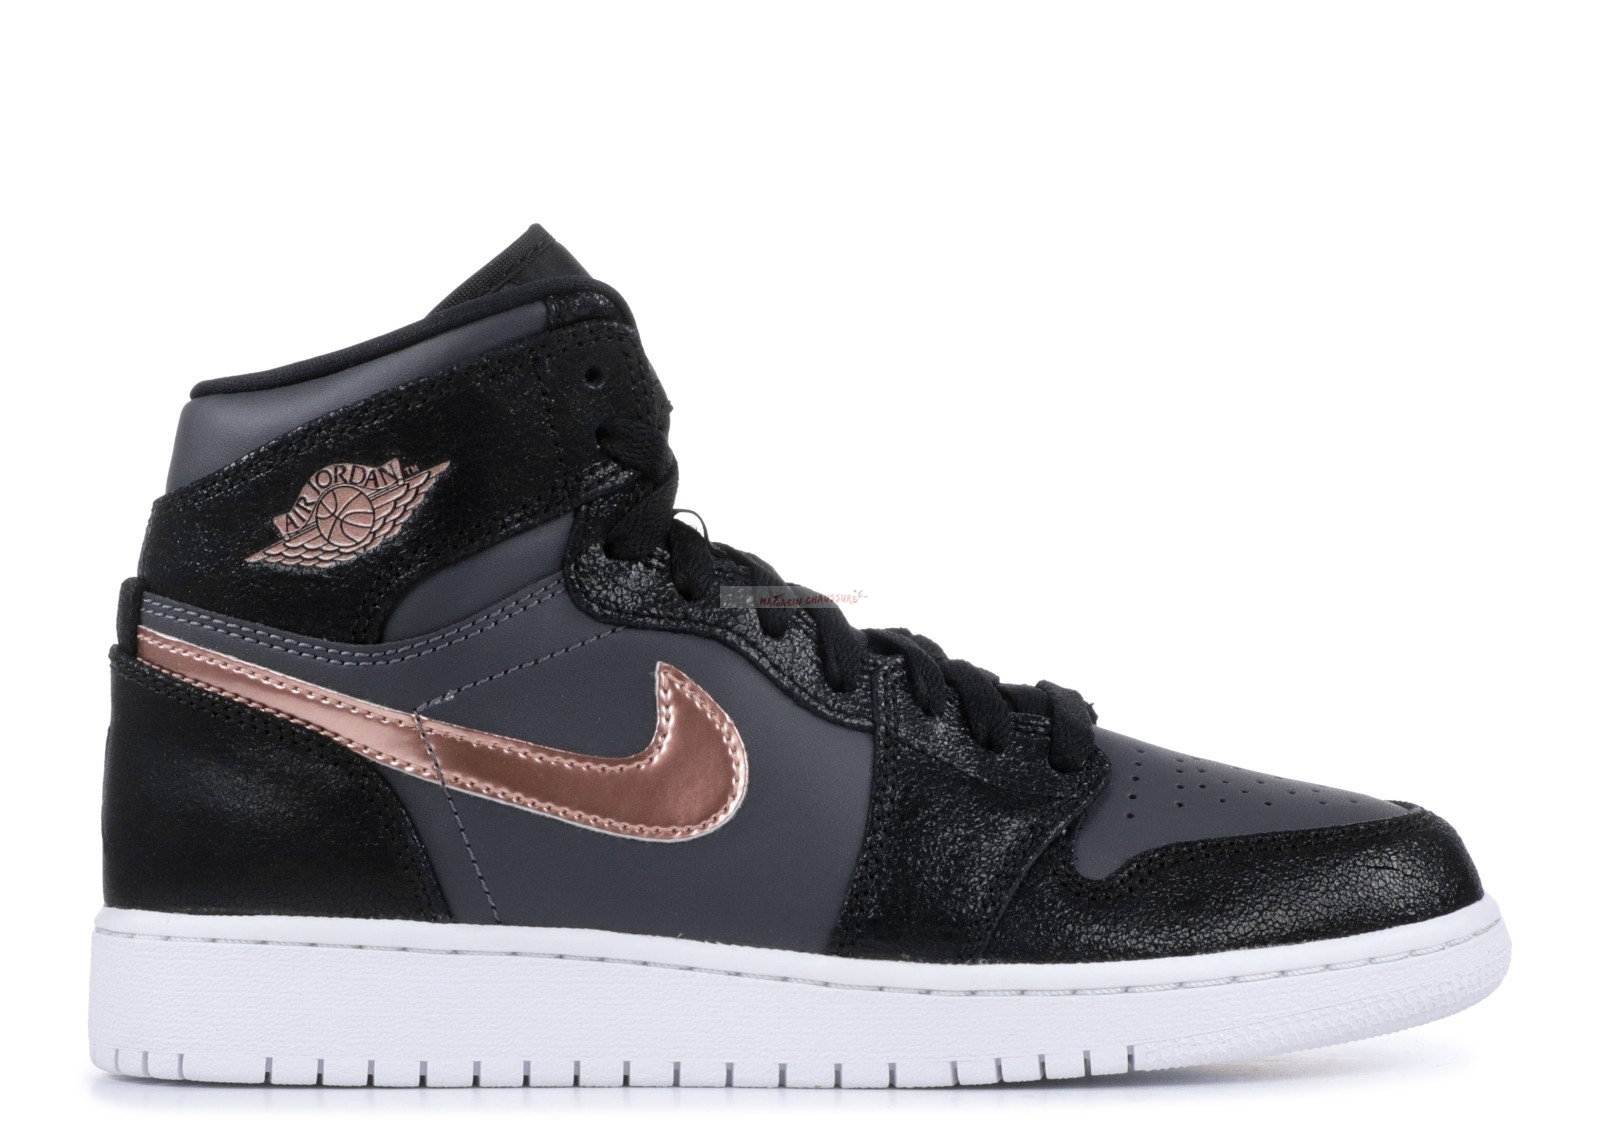 Air Jordan 1 Retro High Bg Noir Or (705300-006) Chaussure de Basket